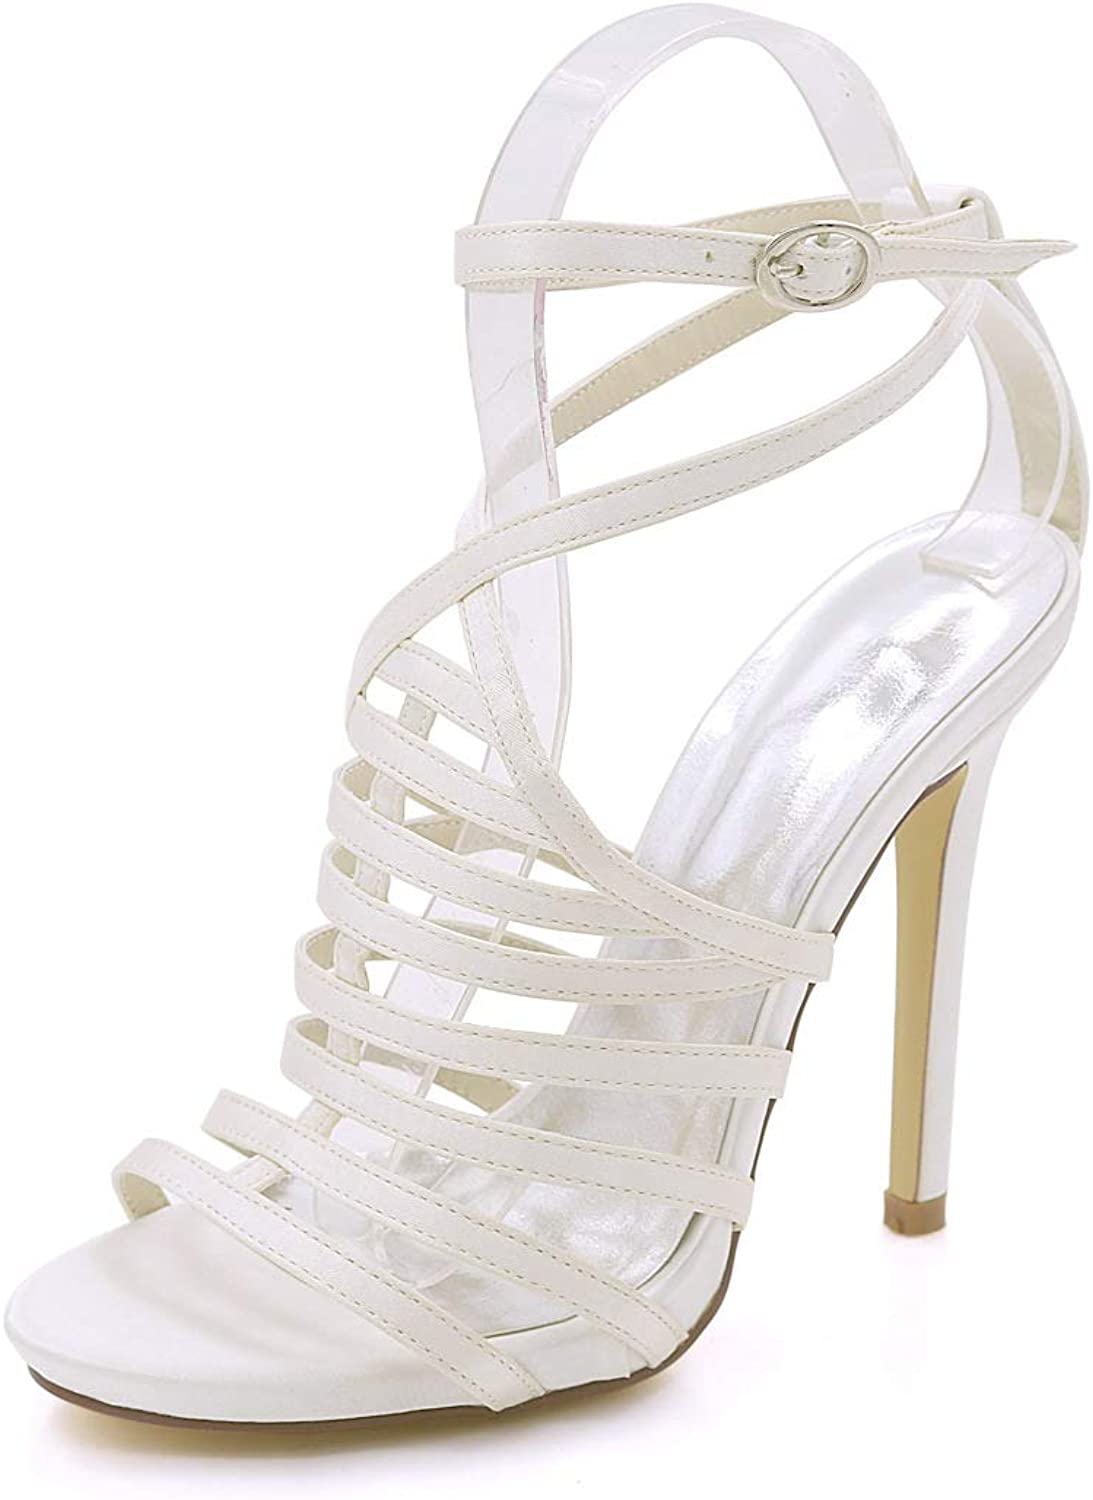 CCBubble High Heels Open Toe Bridal Sandals Multi Strap Stiletto Heels Prom Evening Formal Party shoes 30P